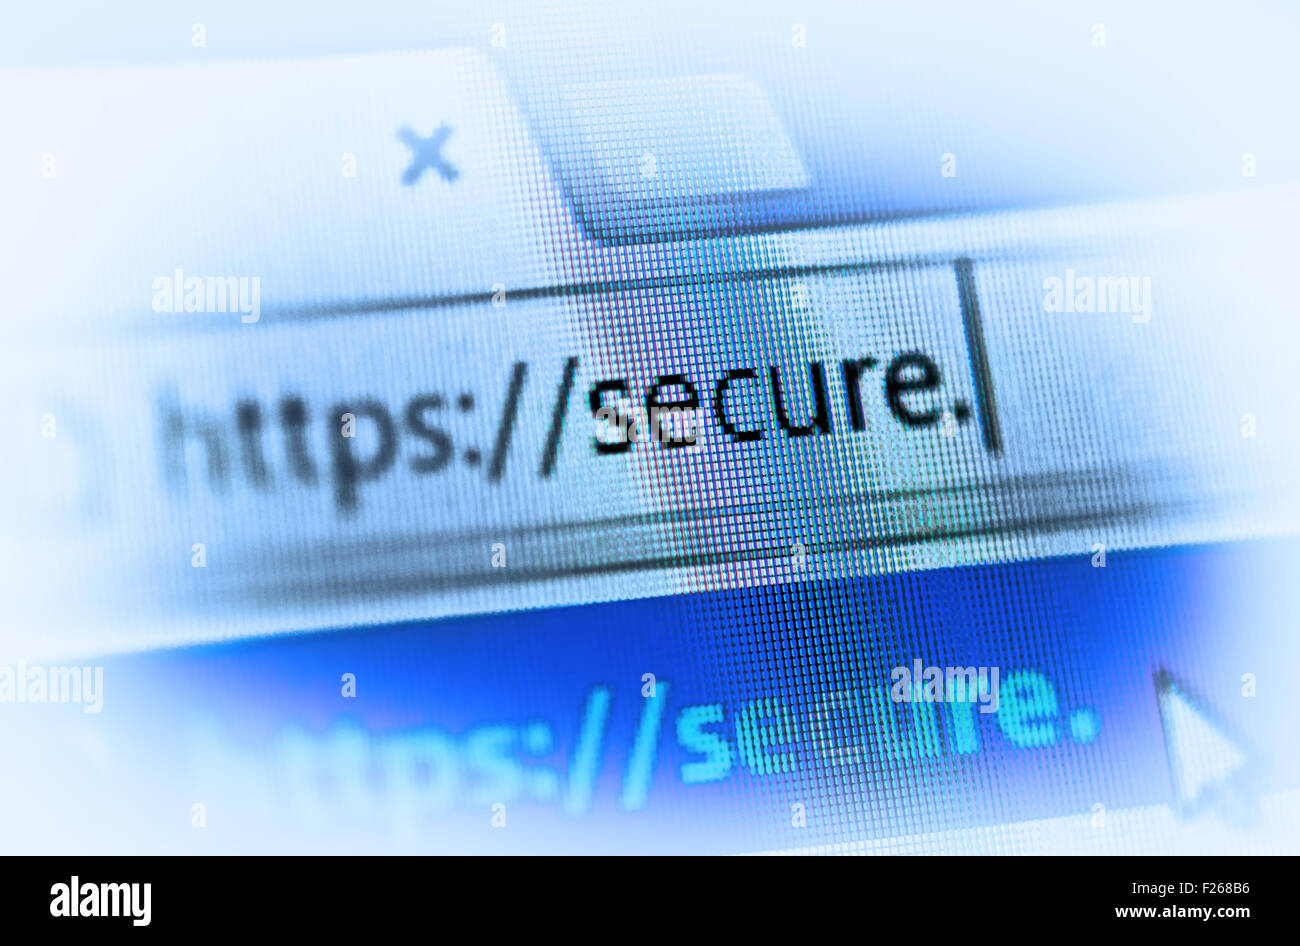 https on computer screen - internet security concept - Stock Image